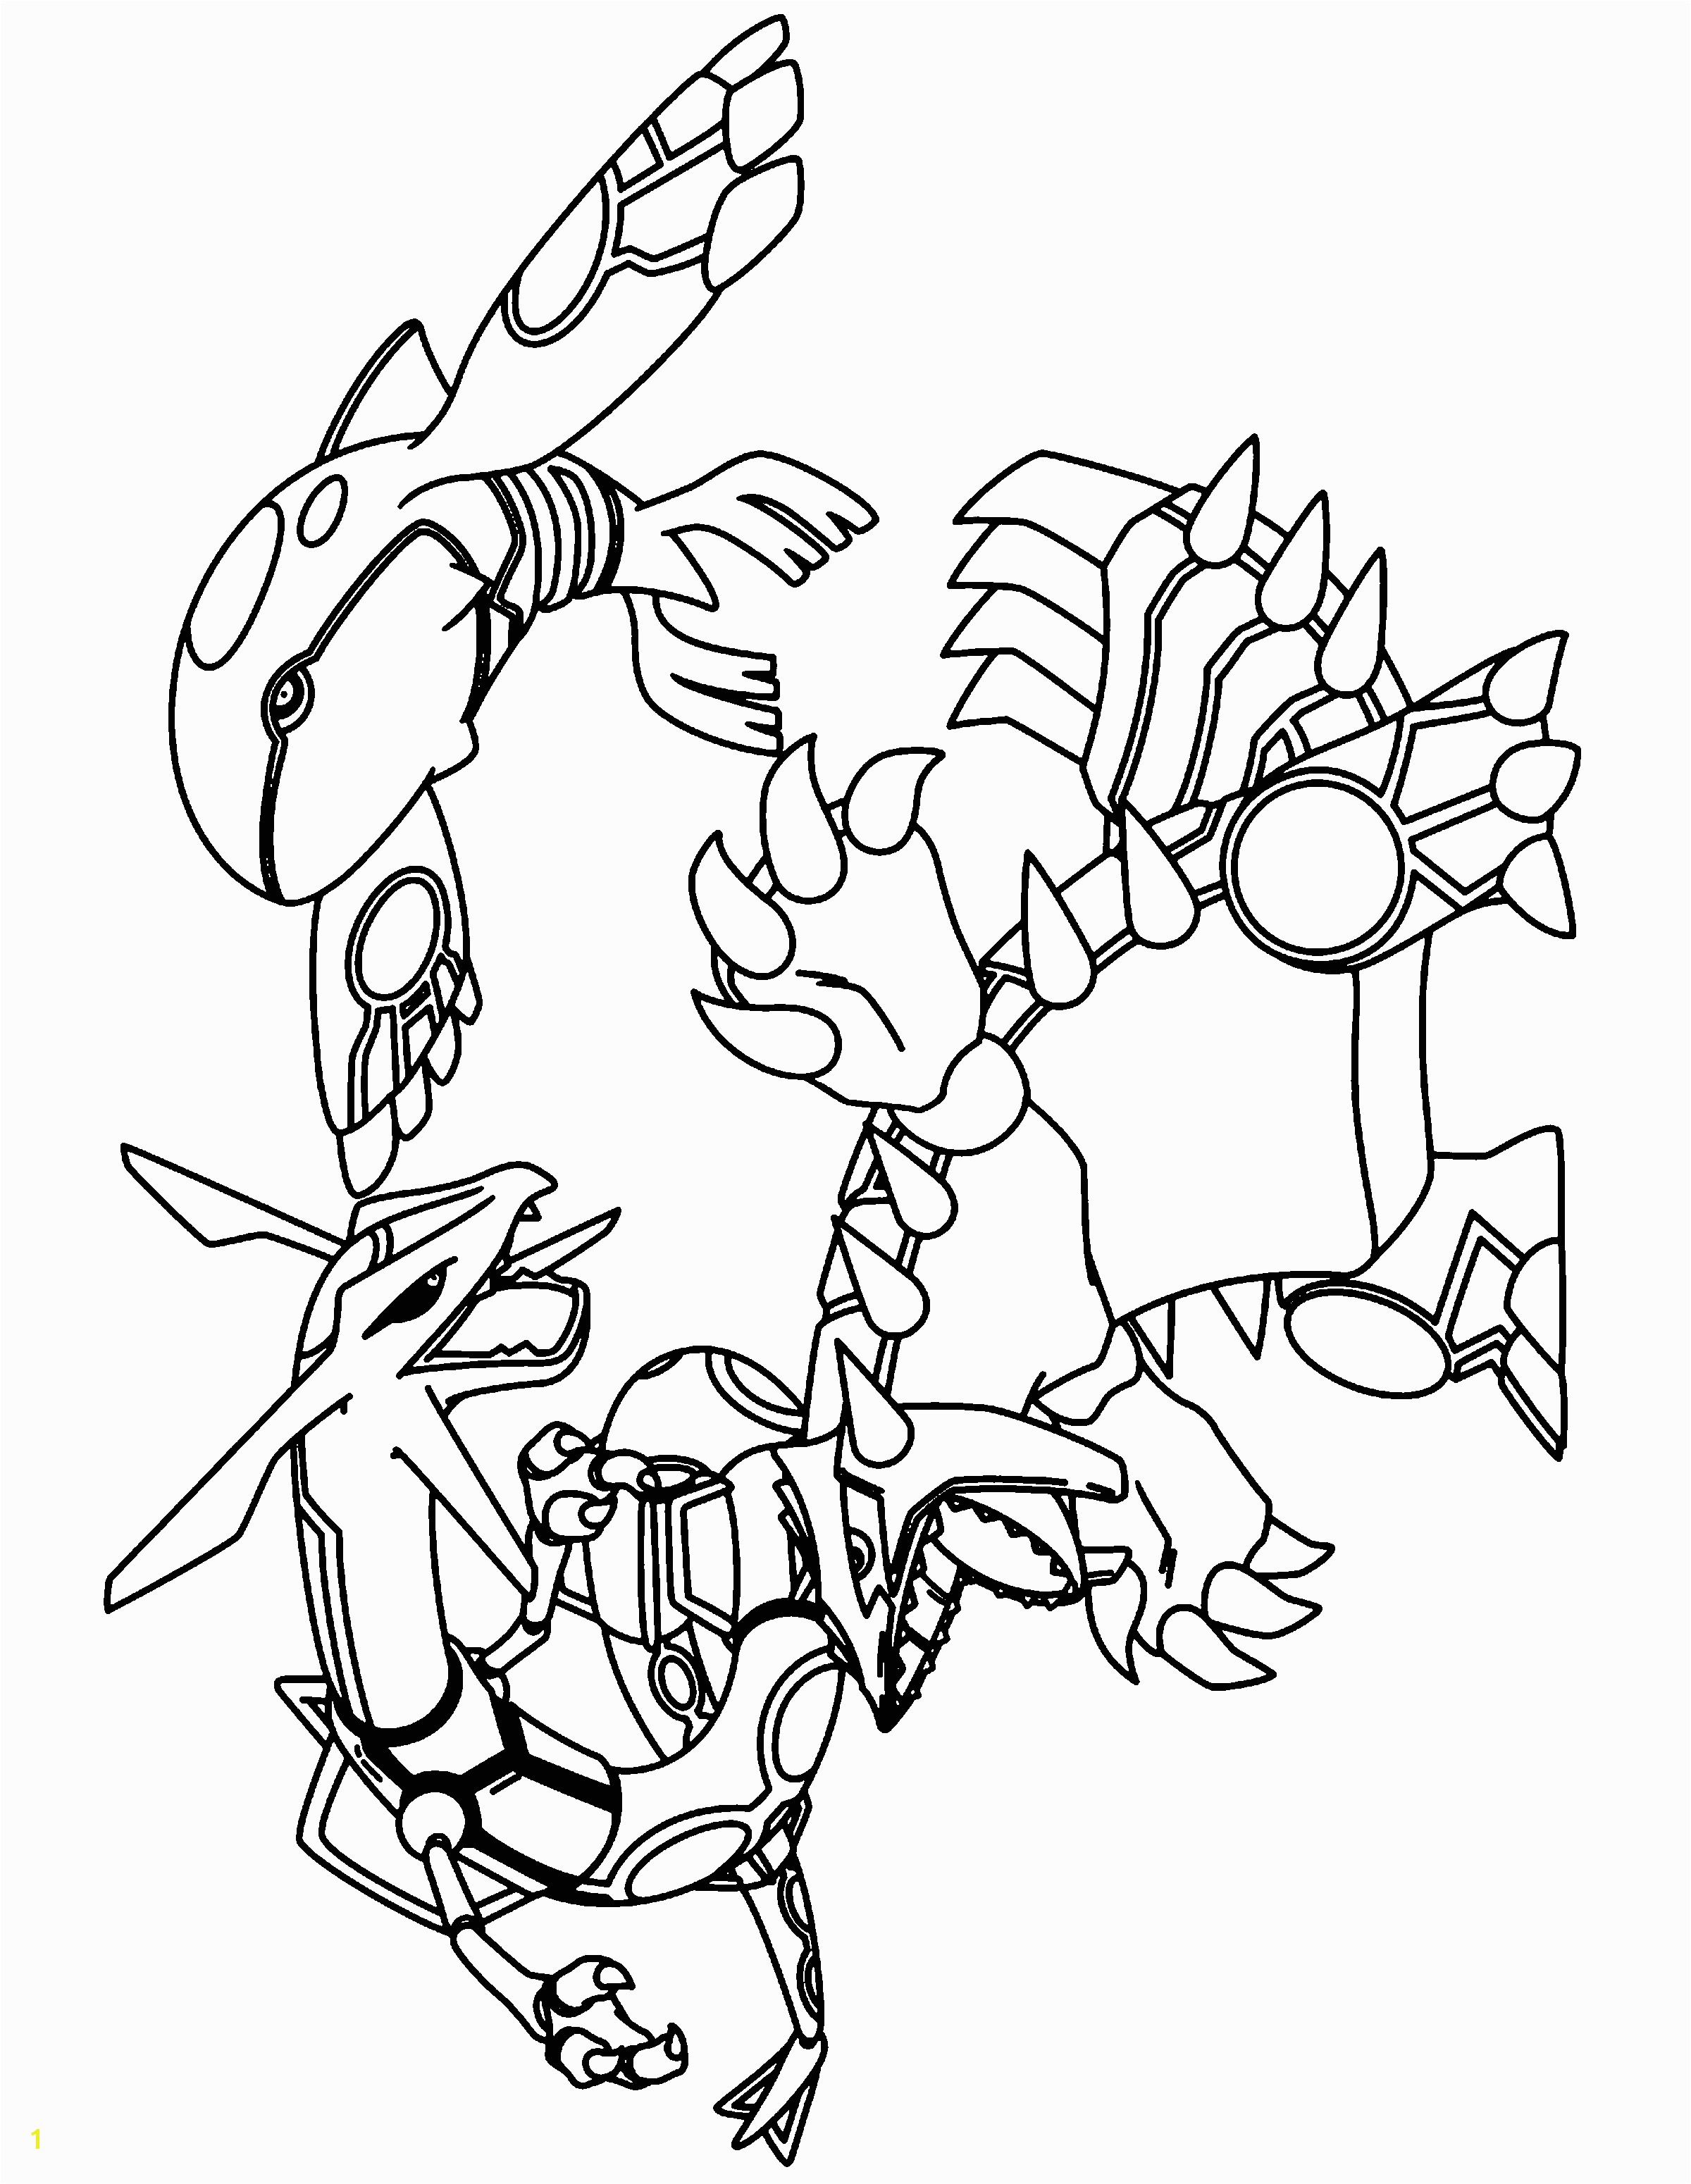 18elegant Legendary Pokemon Coloring Pages More Image Ideas